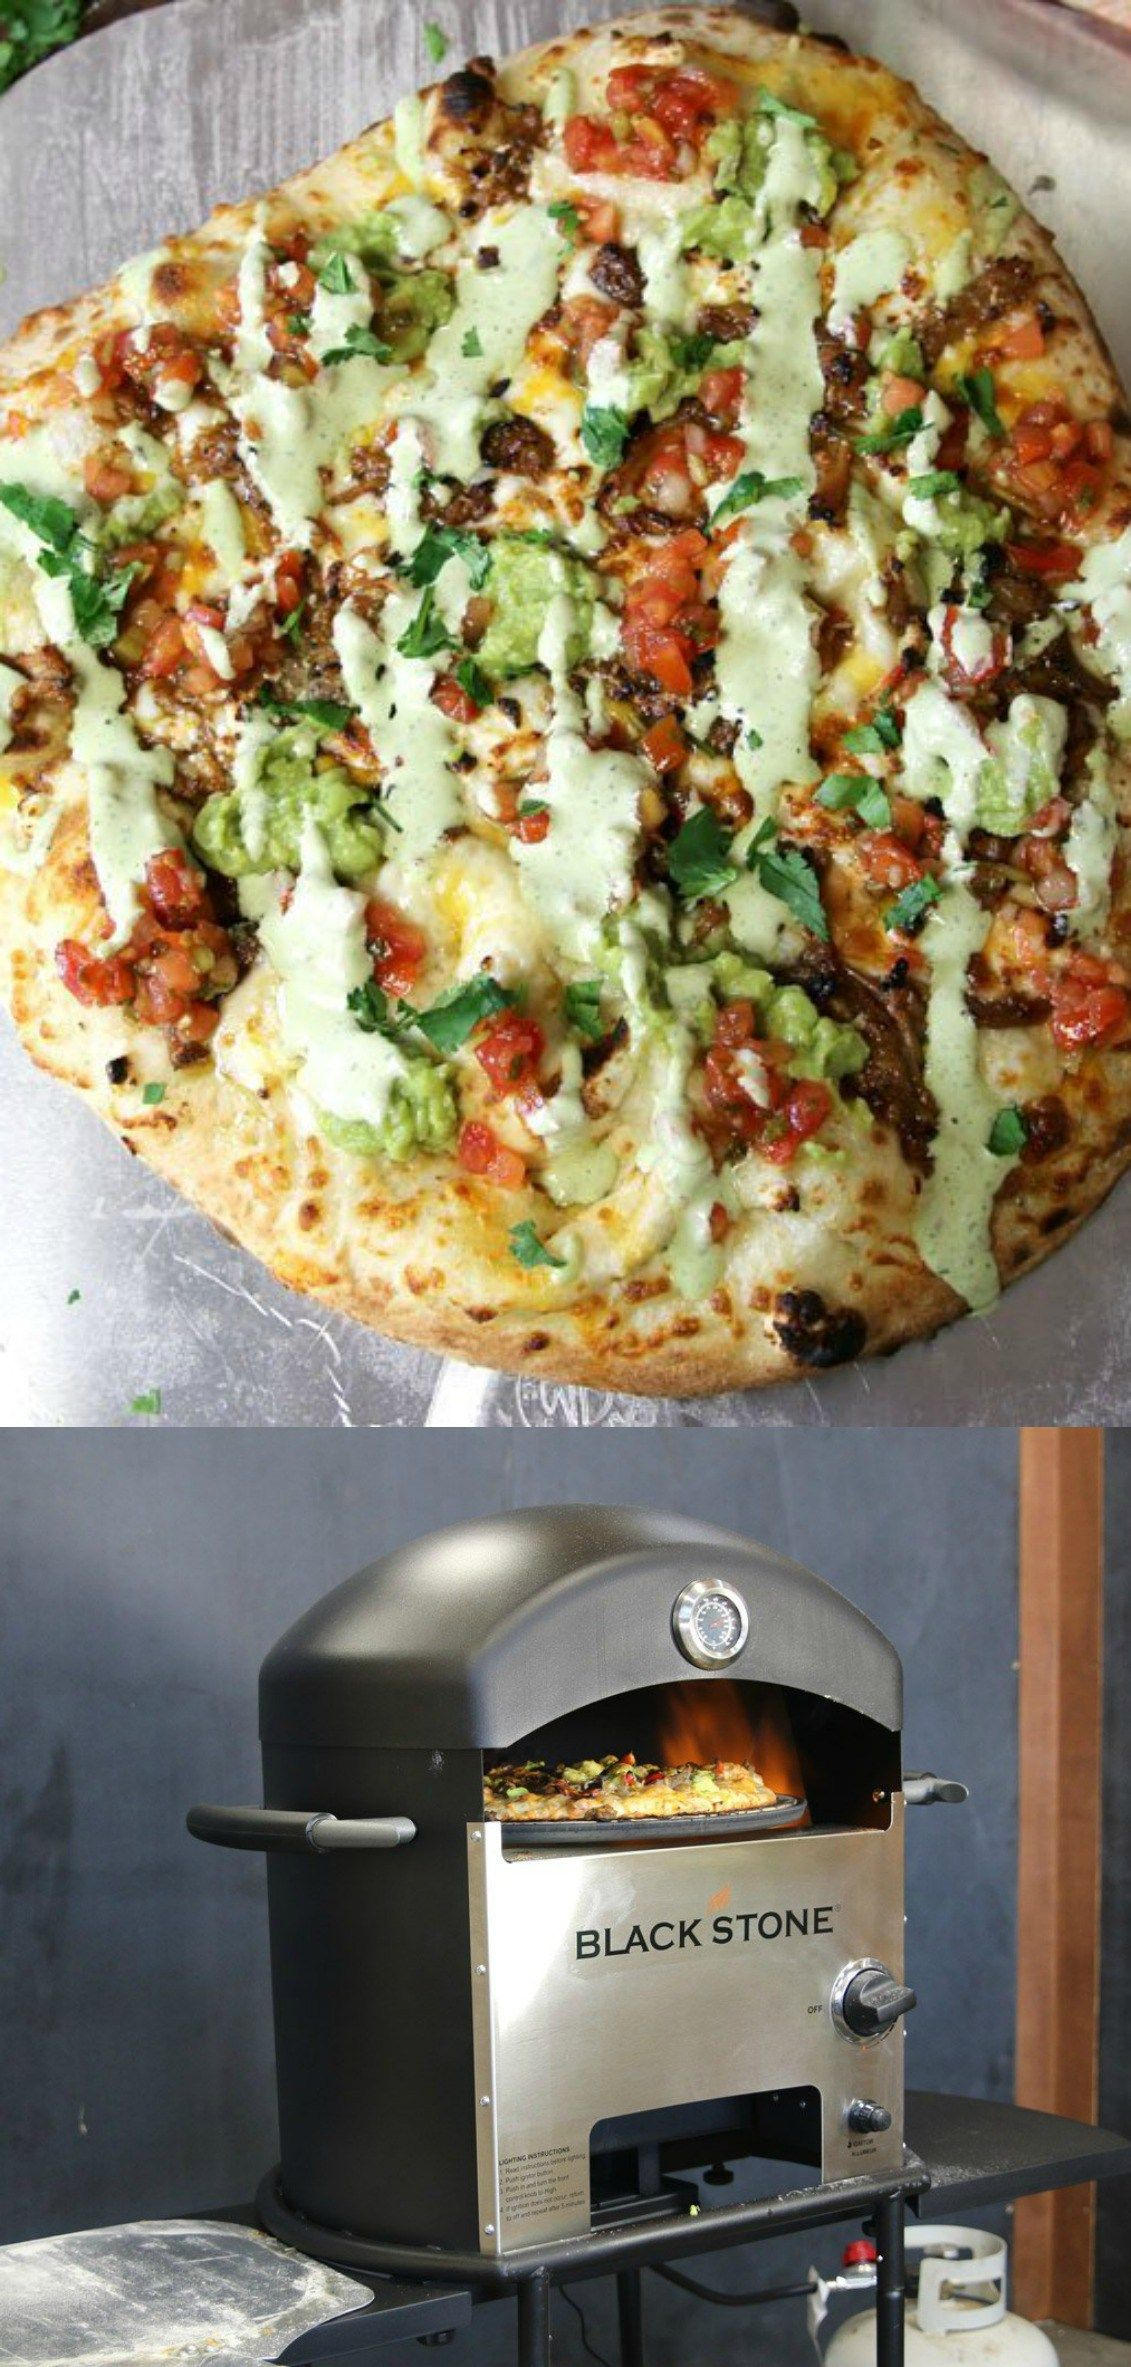 blackstone pizza oven have you ever tried it i m about to buy it